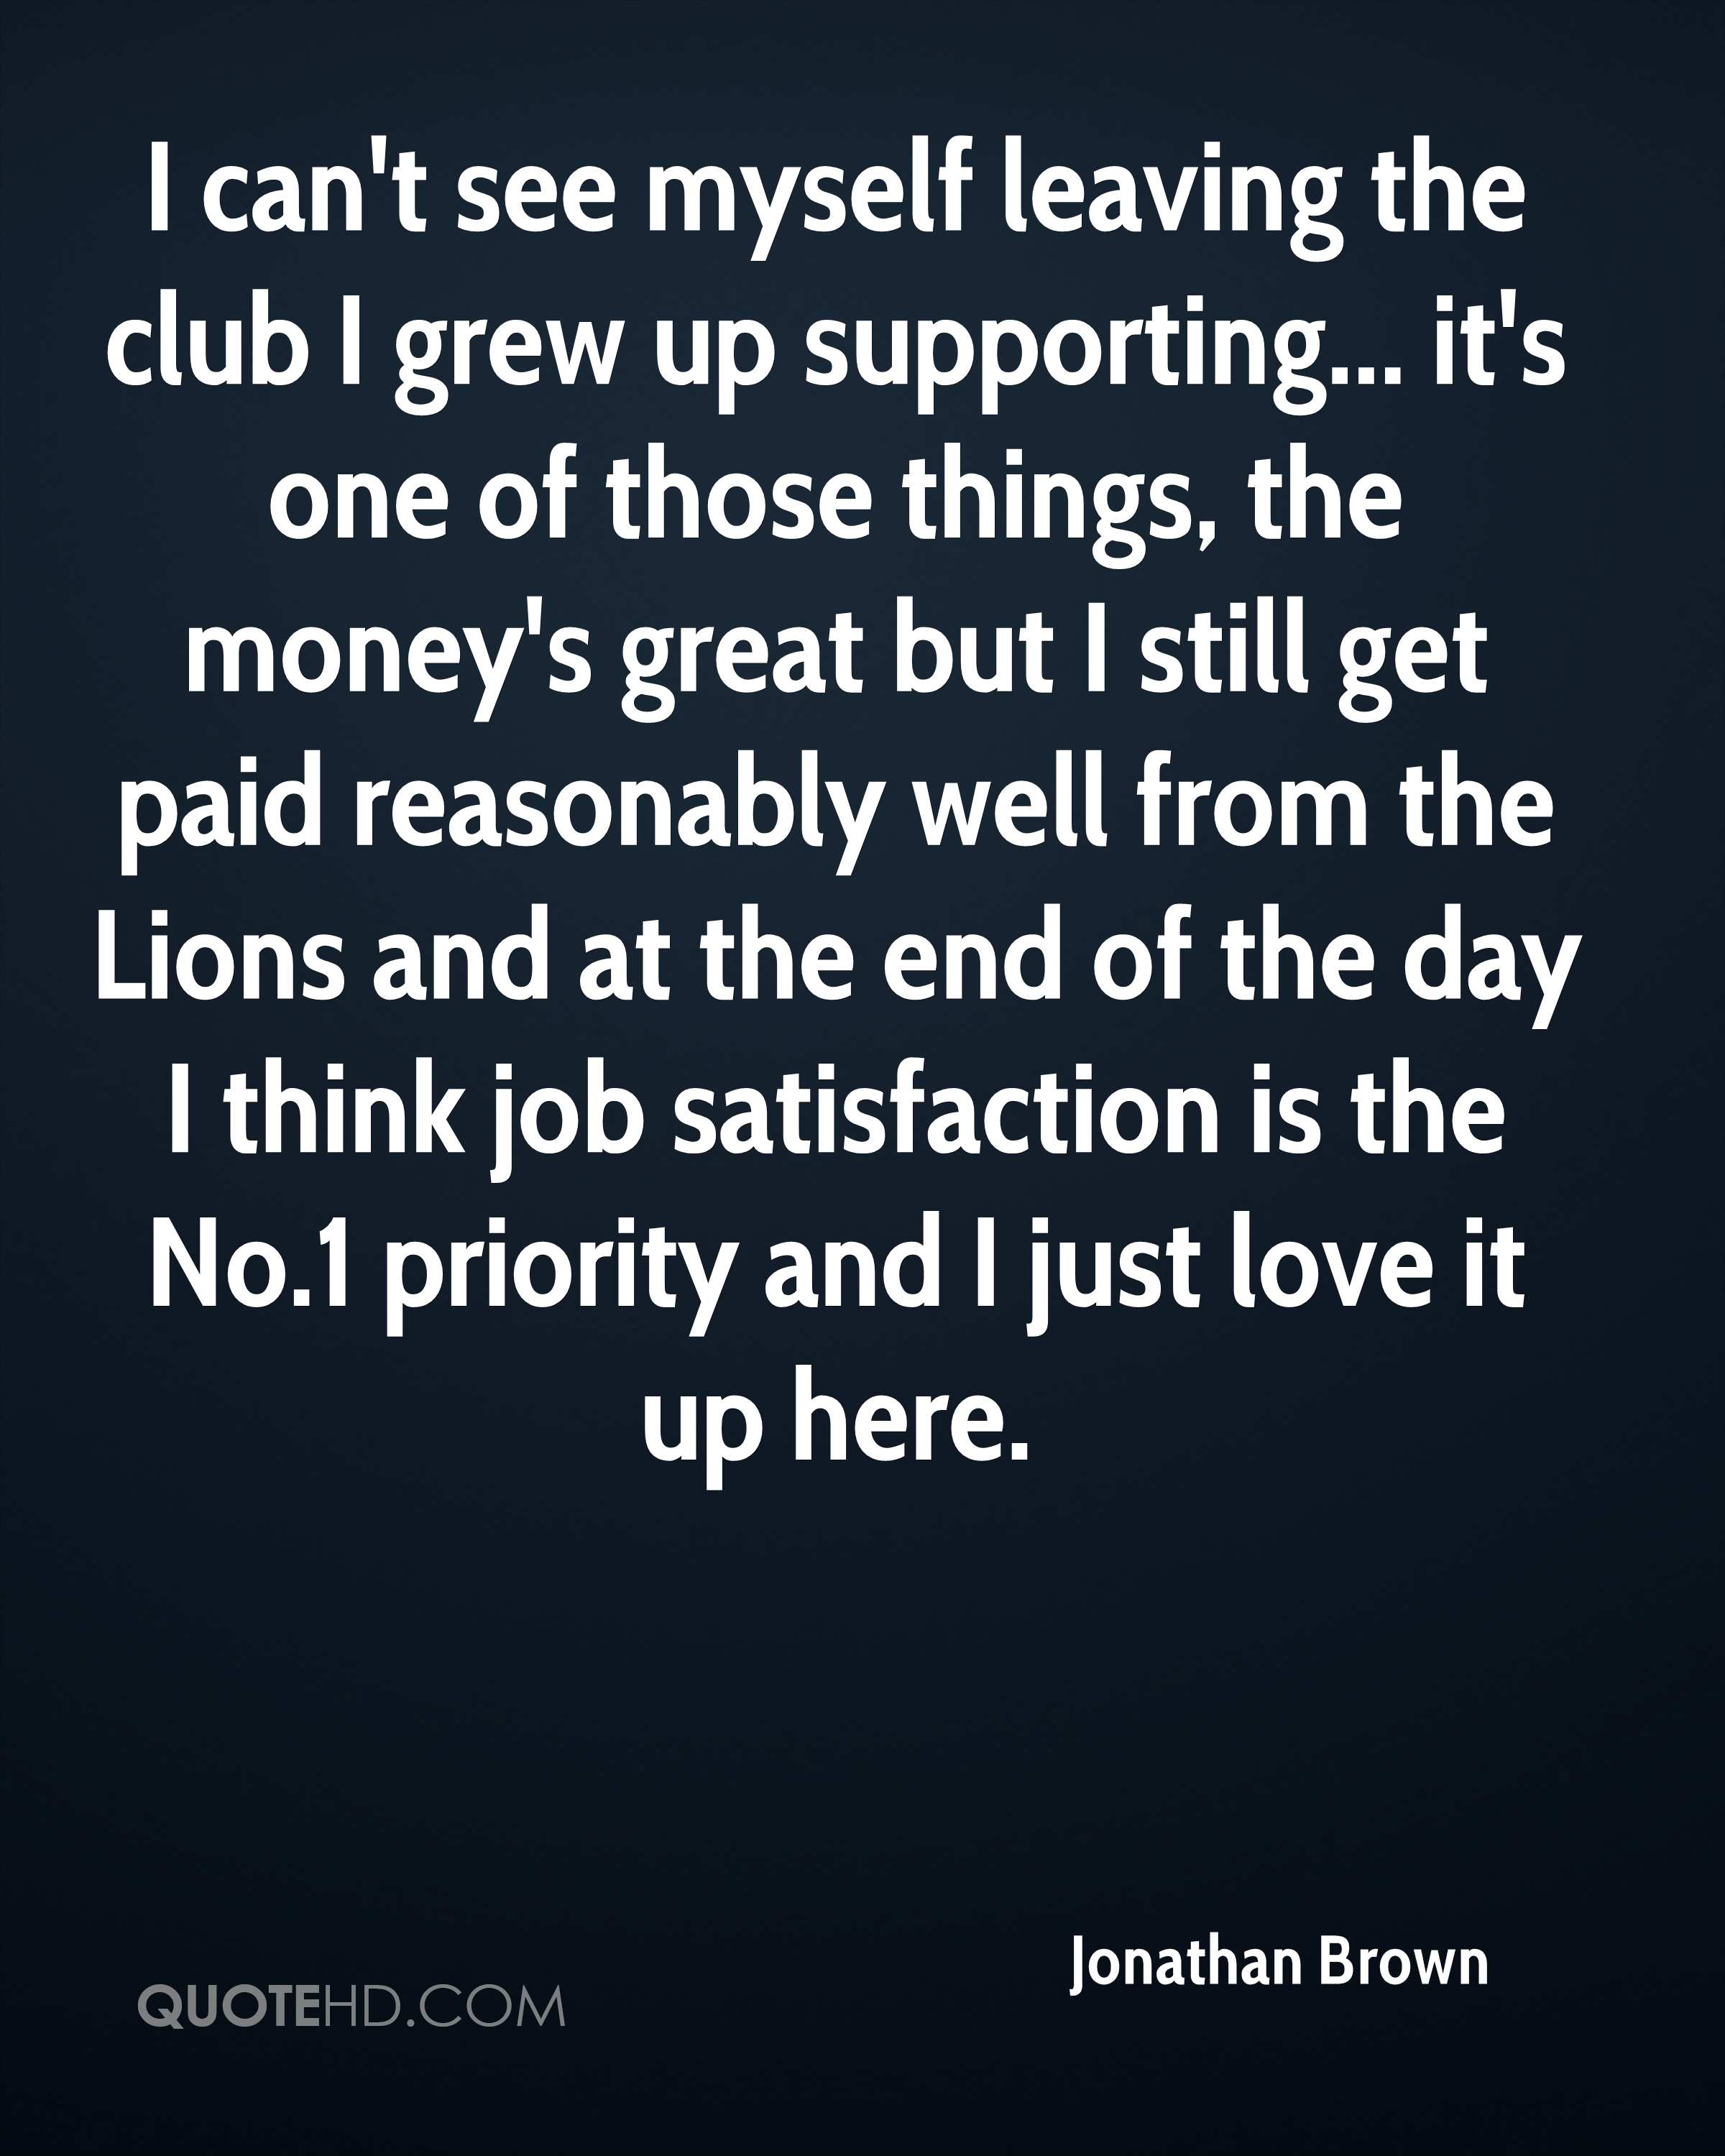 I can't see myself leaving the club I grew up supporting... it's one of those things, the money's great but I still get paid reasonably well from the Lions and at the end of the day I think job satisfaction is the No.1 priority and I just love it up here.